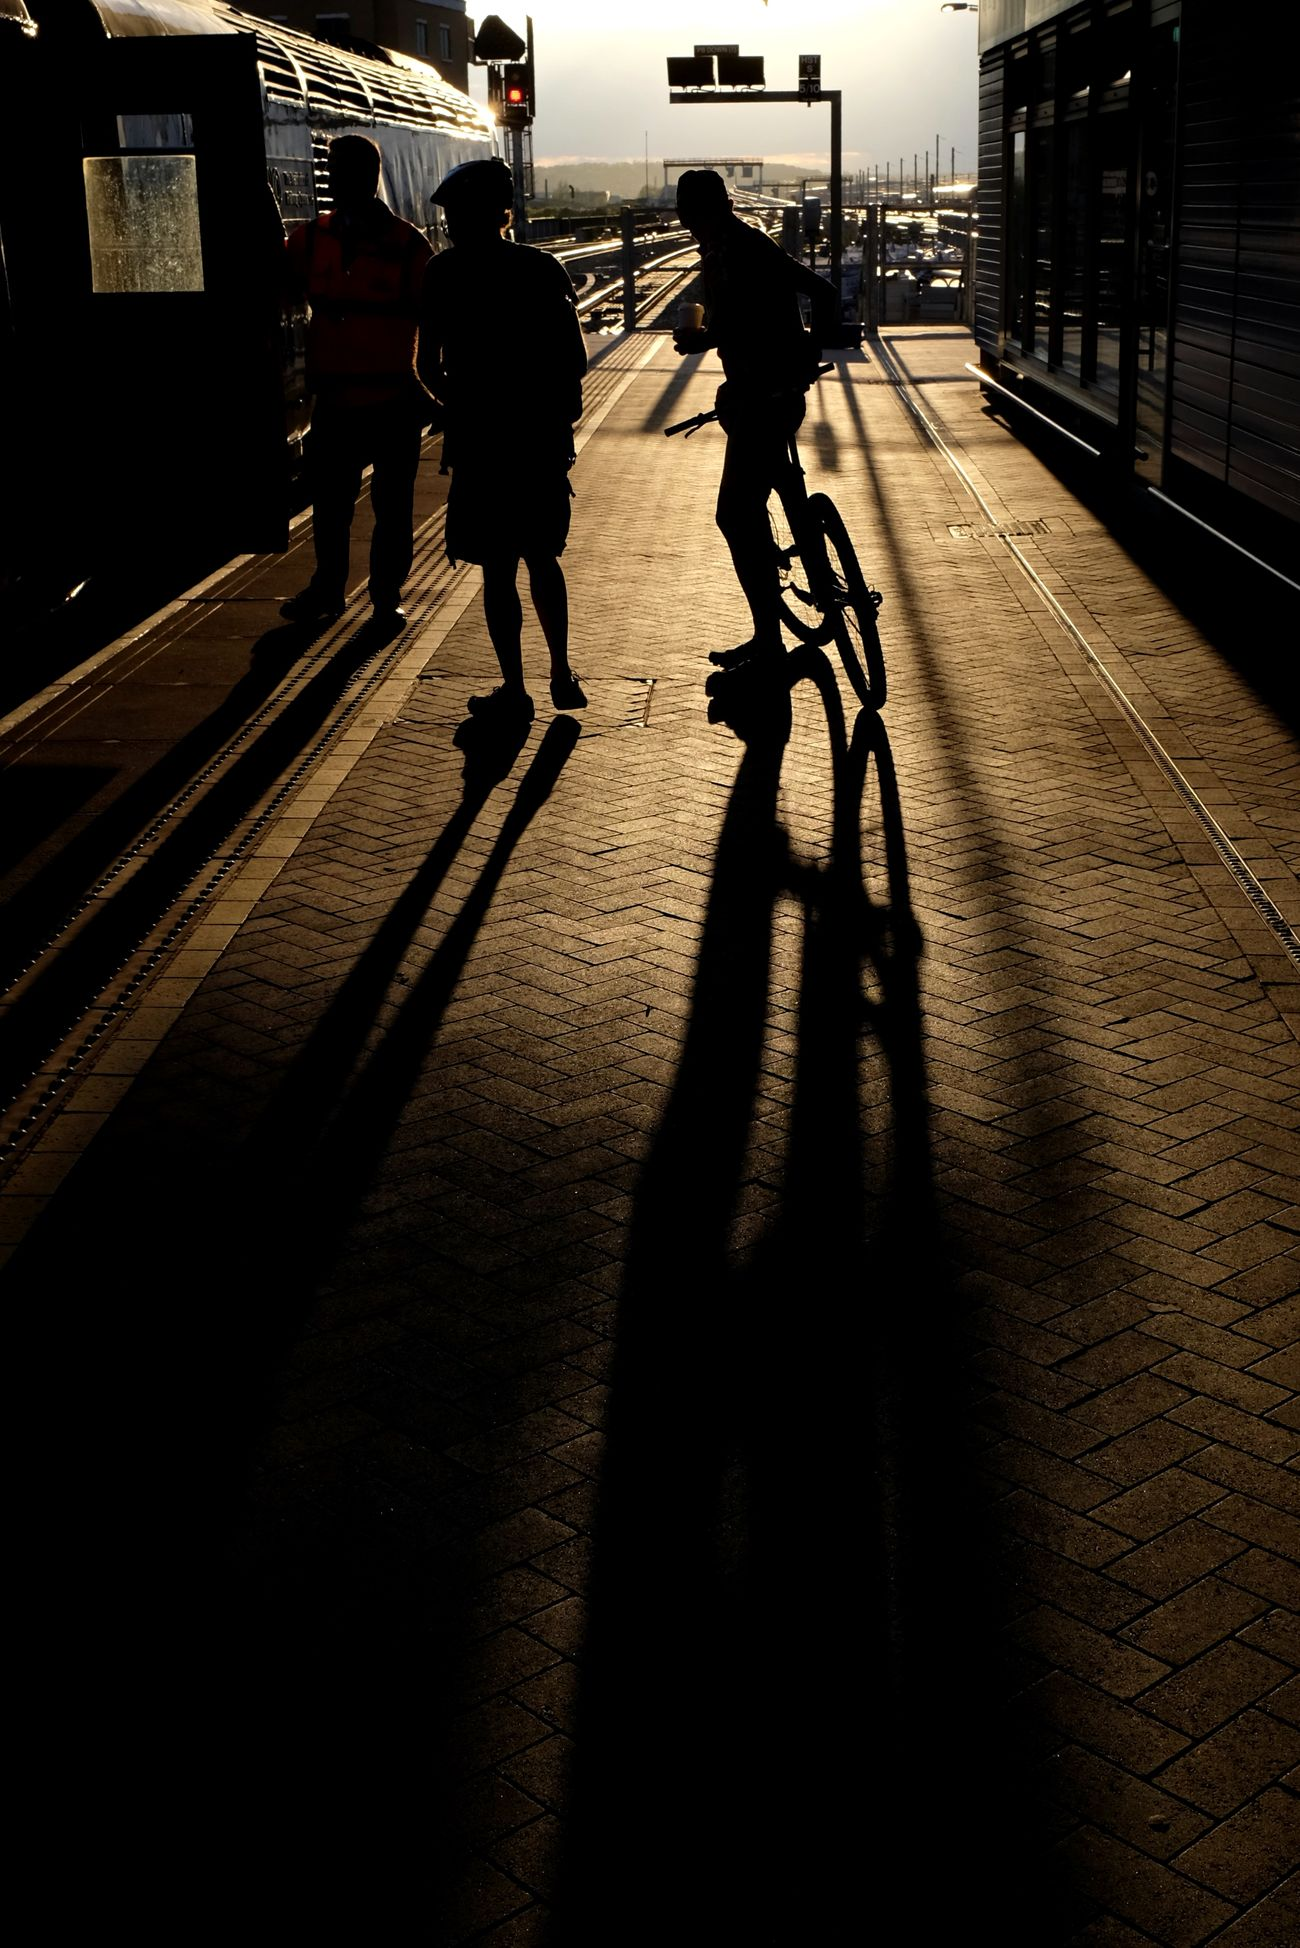 Platform 8B at Reading Station. Cyclist puts his bike on the train in the evening light. Train Station Commuting Fujifilm Light And Shadow Railways